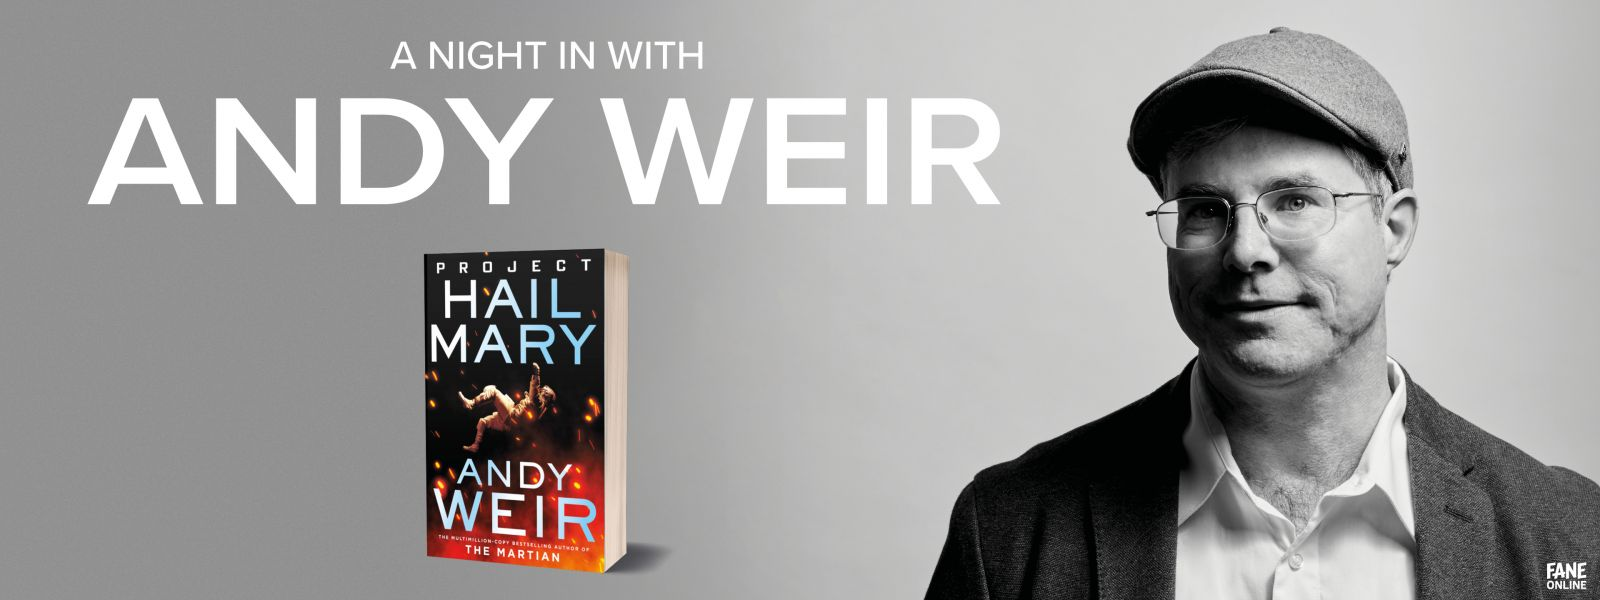 A Night In with Andy Weir